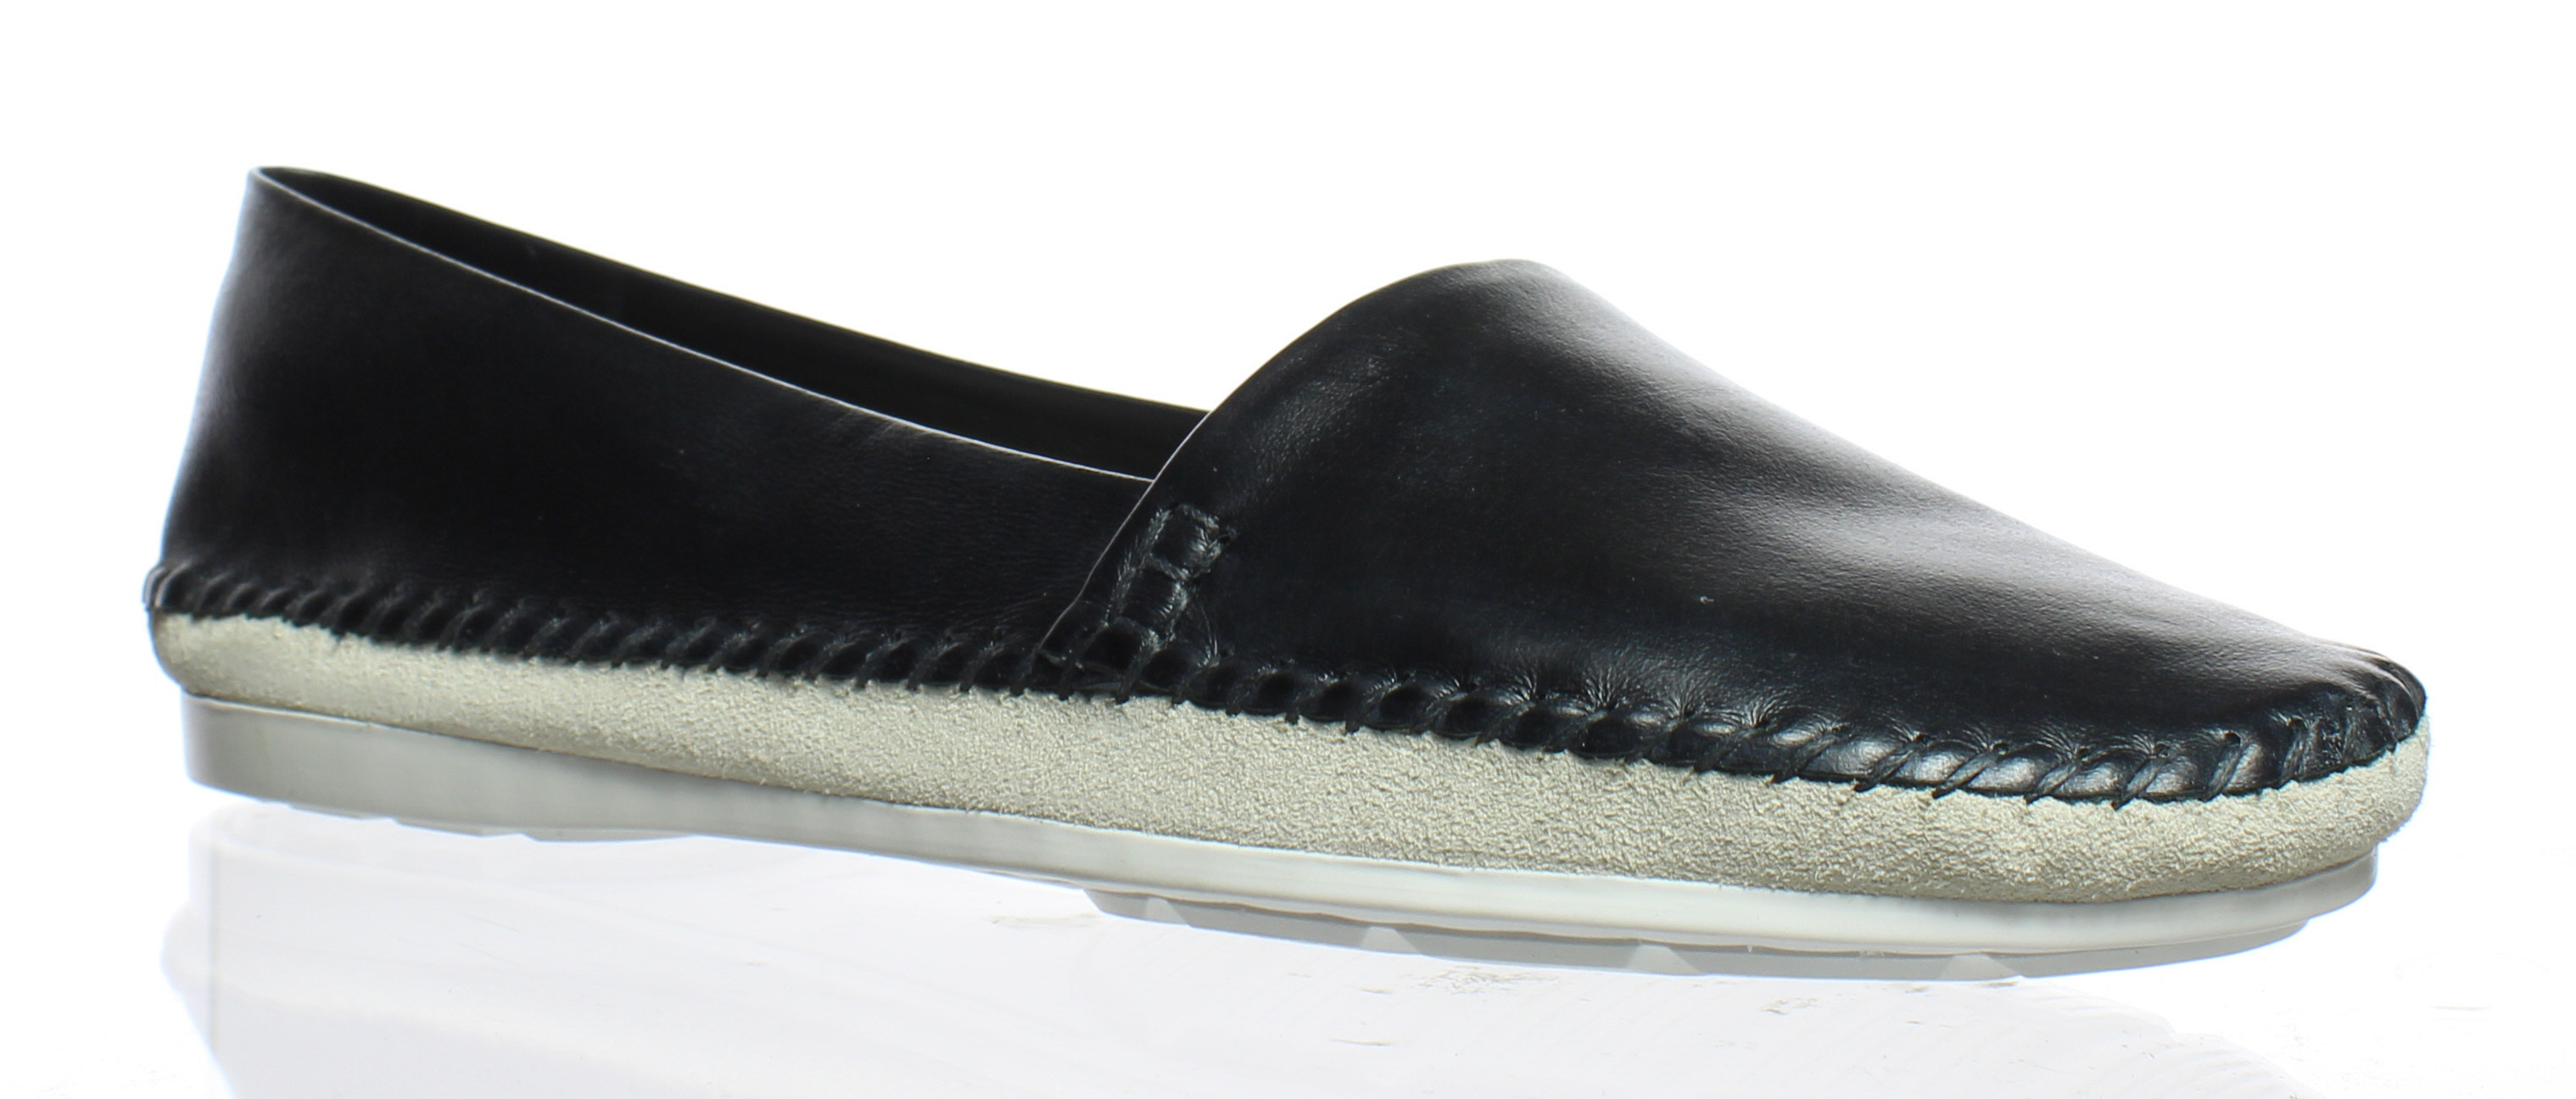 New Charles David Womens Star Loafers Size 9.5